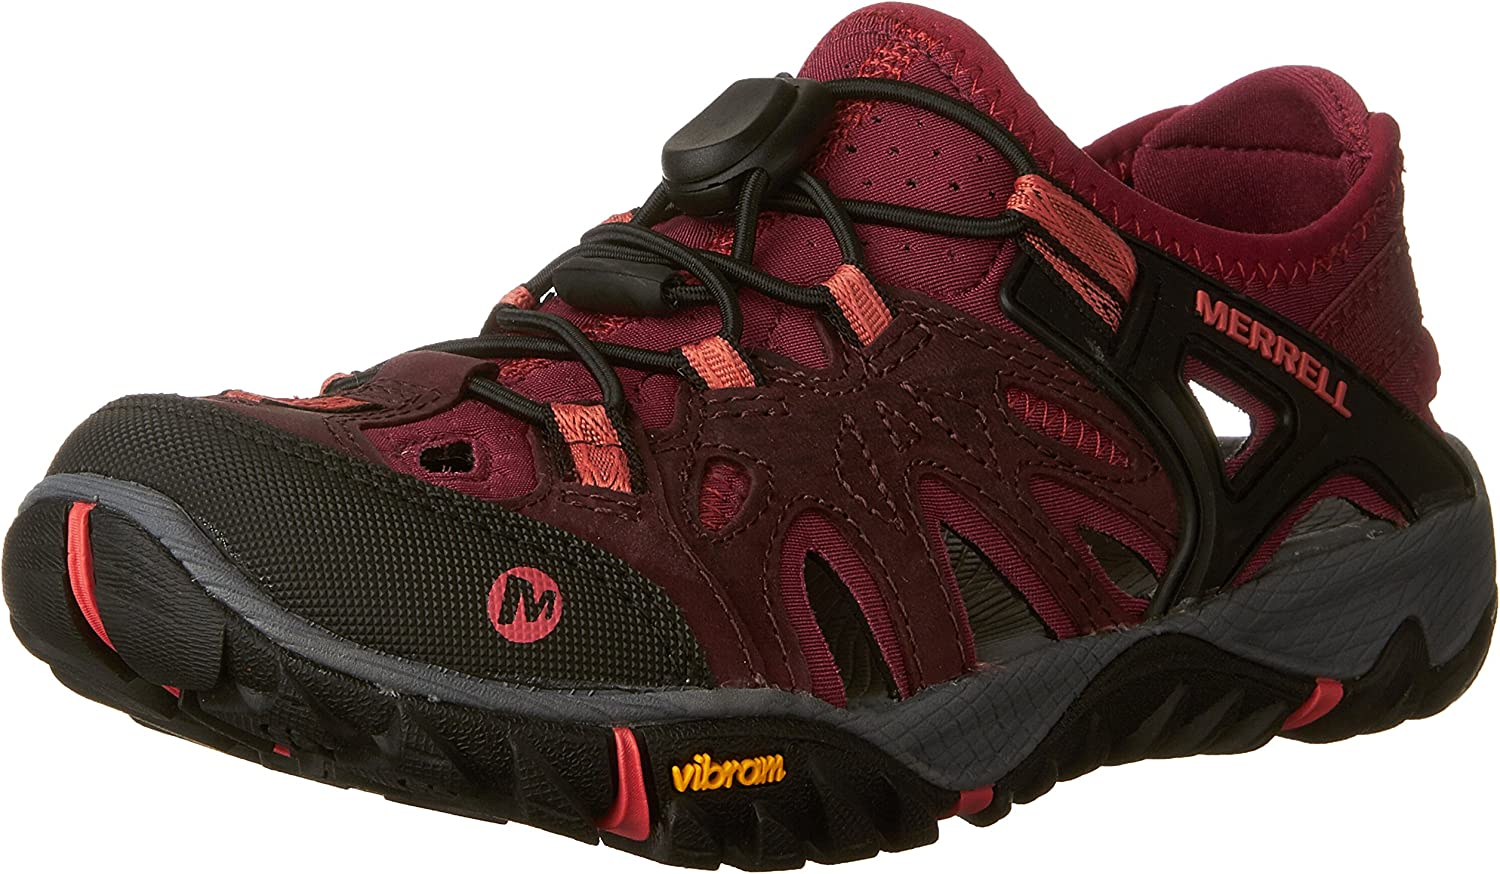 Merrell Womens All Out Blaze Sieve Sneakers